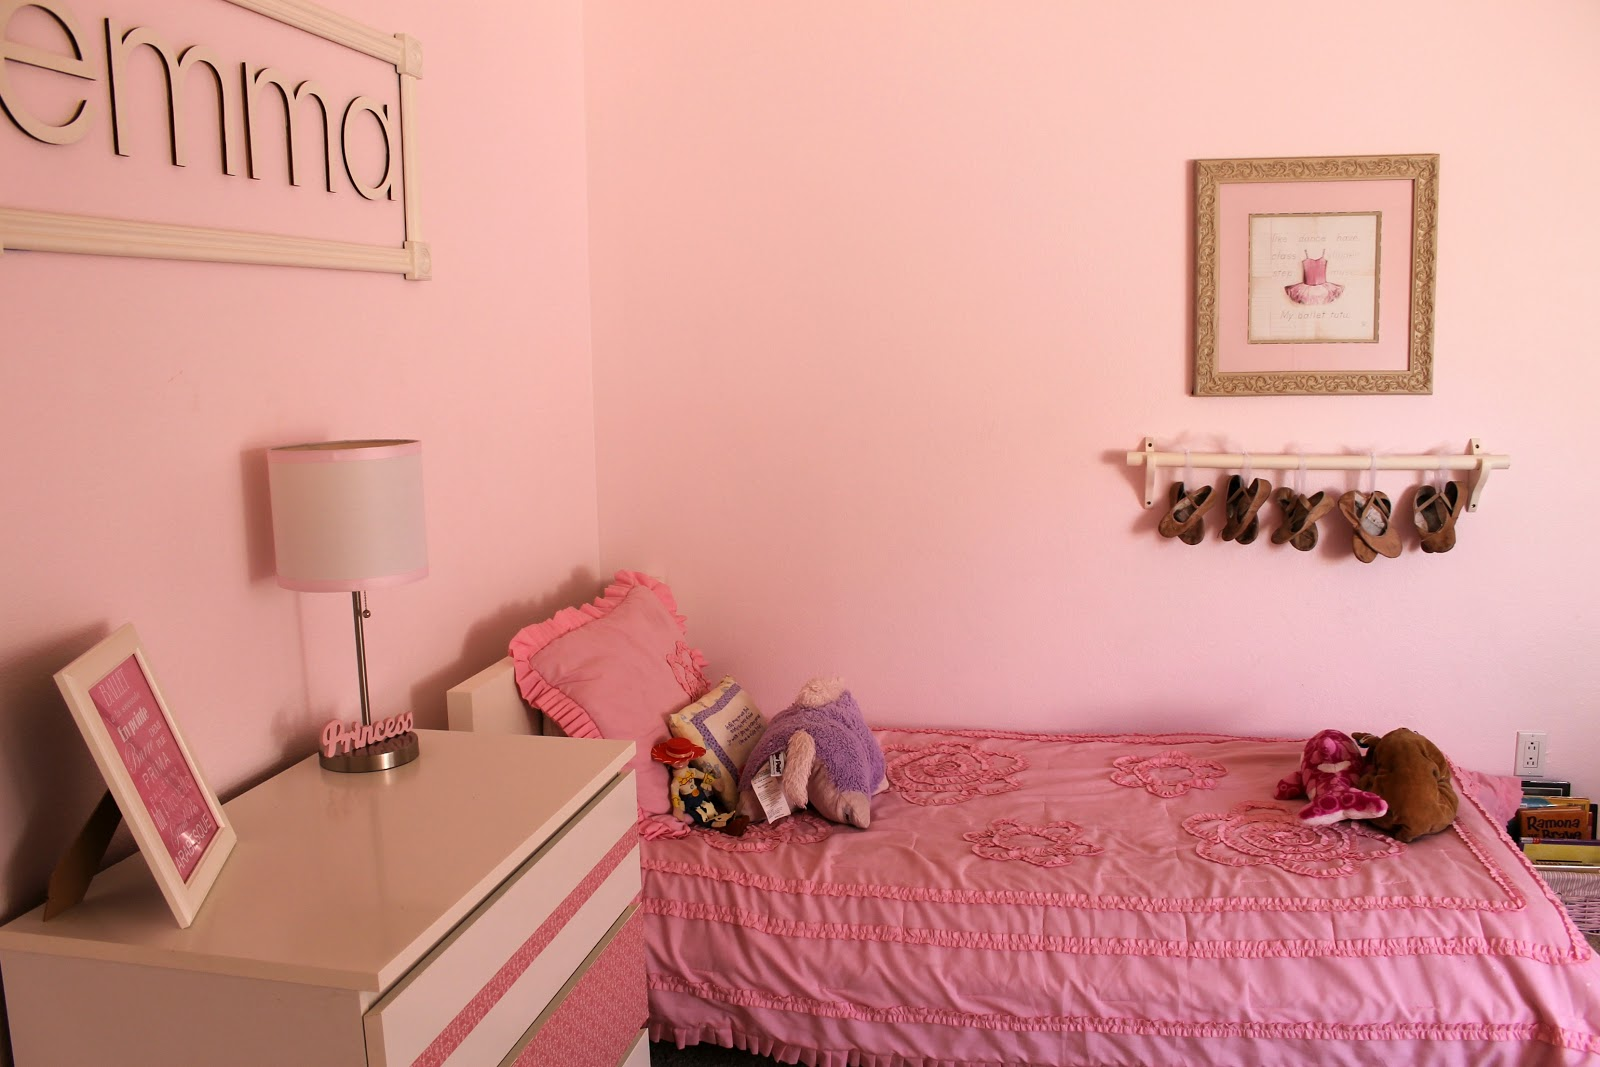 ... Kind Of Room She Wanted, She Quickly Told Me She Wanted A Ballerina Room.  So, Without Further Ado, Here Is The Transformation From Blah To Beautiful.